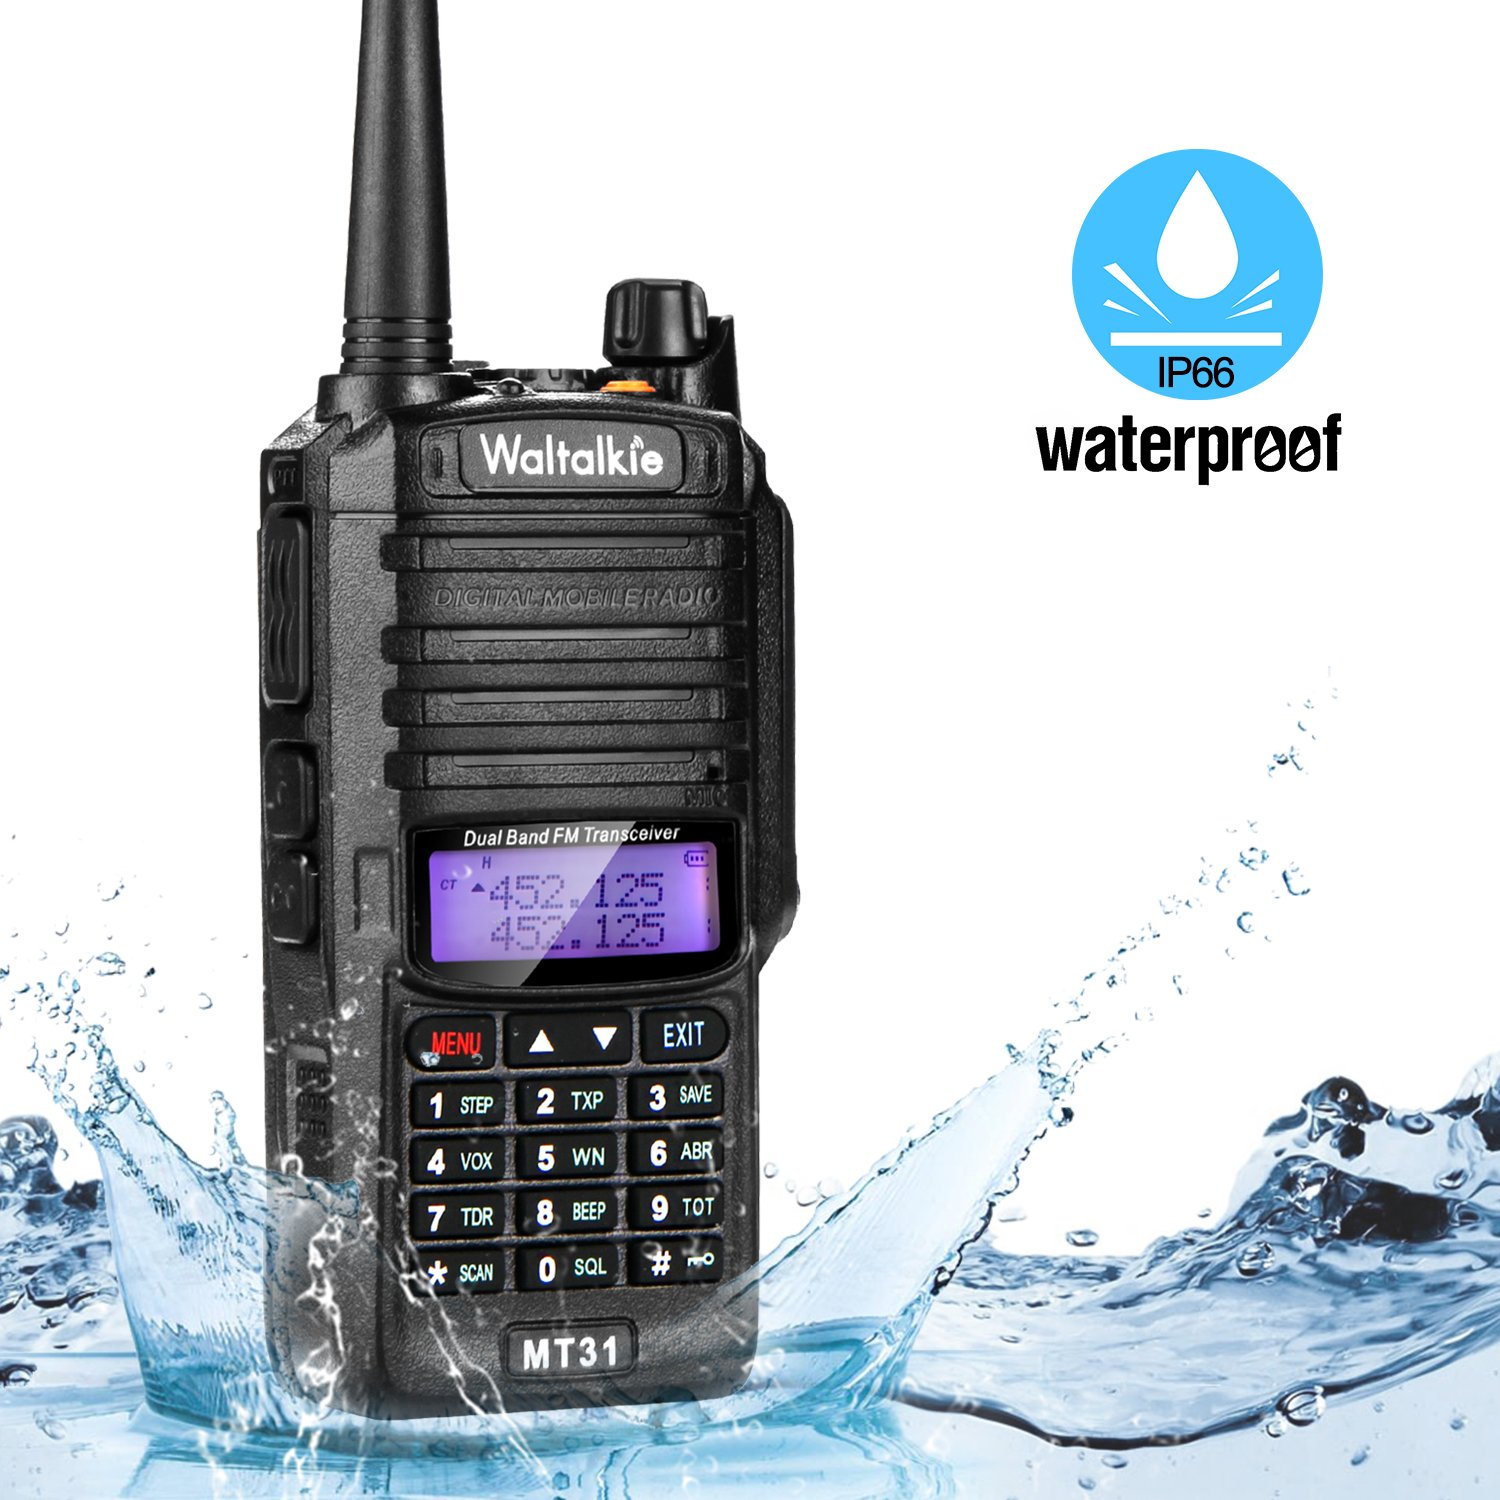 Wireless Radio Transceiver, IP66 Waterproof & Dustproof Two Way Radio Walkie Talkie with Headset/LED Flashlight/Battery/Charger for Indoor & Outdoor Activities by Waltalkie (Image #1)